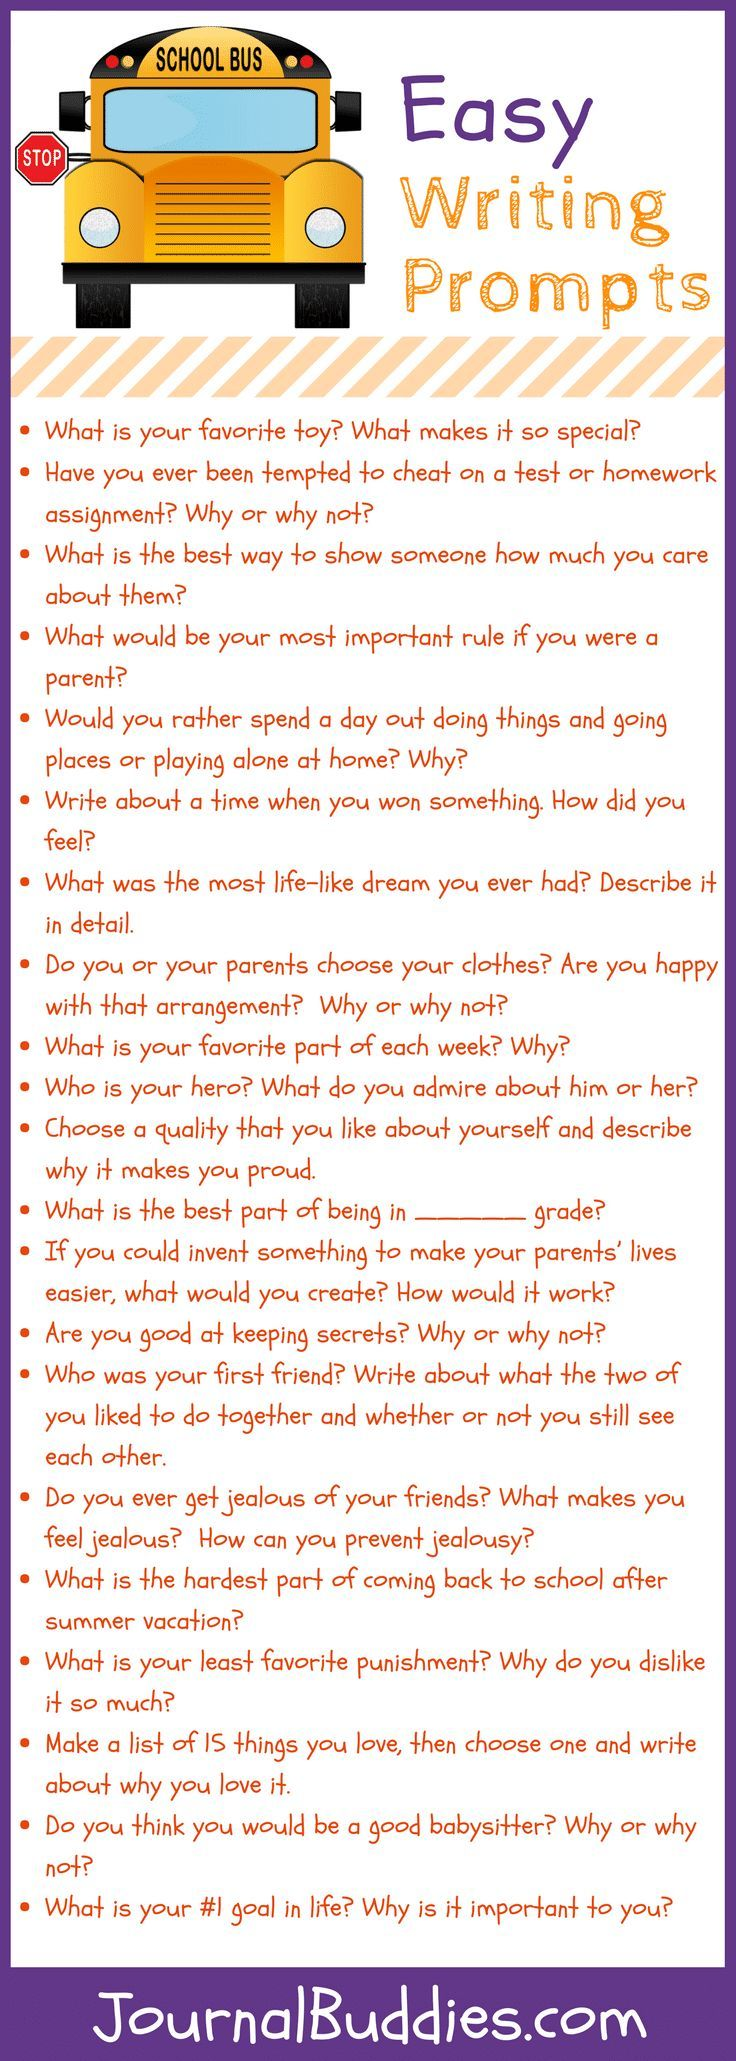 Easy Writing Prompts For Elementary Kids Fun Things To Do With